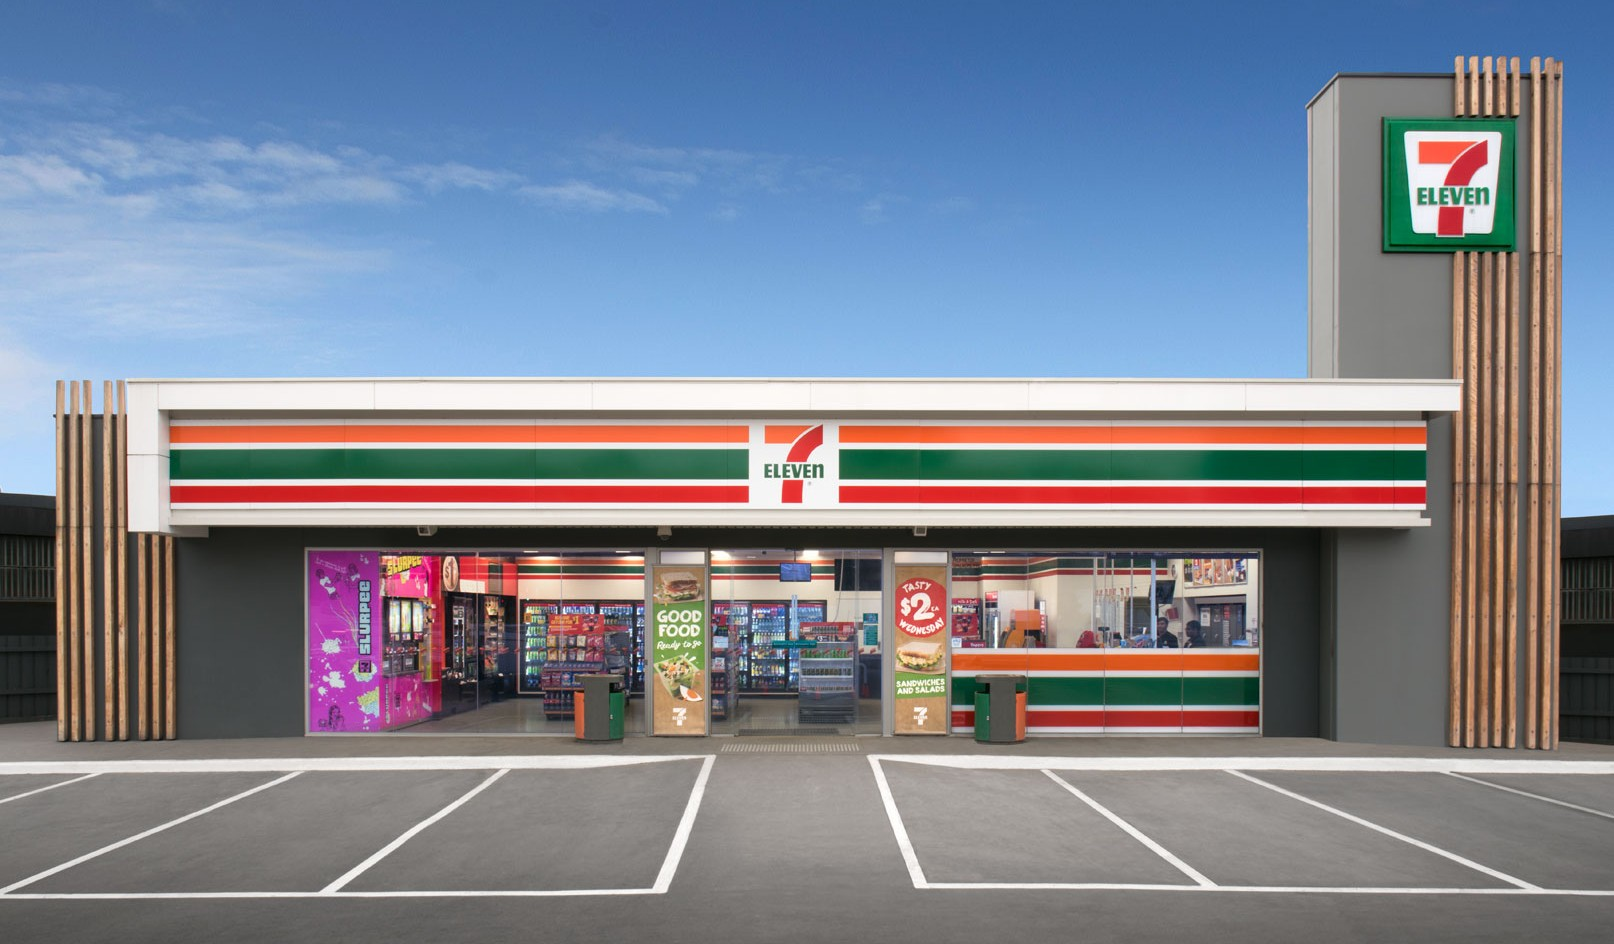 <div>industrial</div><div> <a href='https://nedmeldrum.com.au/project/7-eleven-properties/'>View Series</a></div>